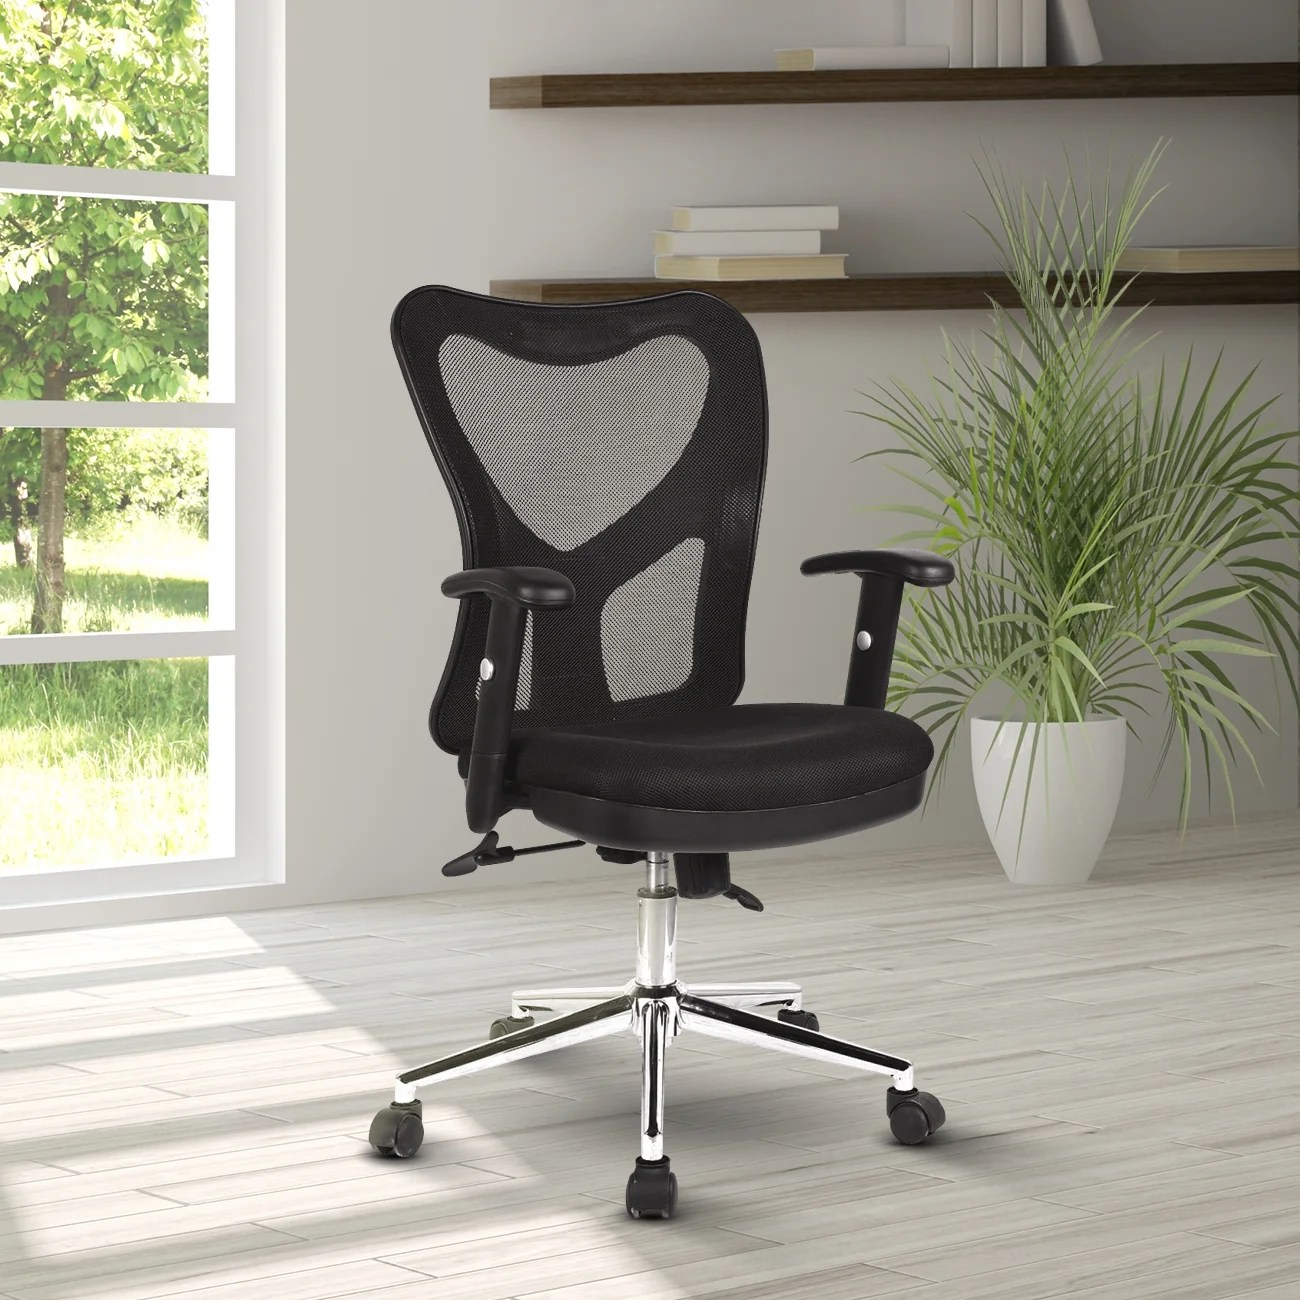 Mobili Furniture Techni Mobili Mesh Ergonomic Task Chair Wayfair Ca